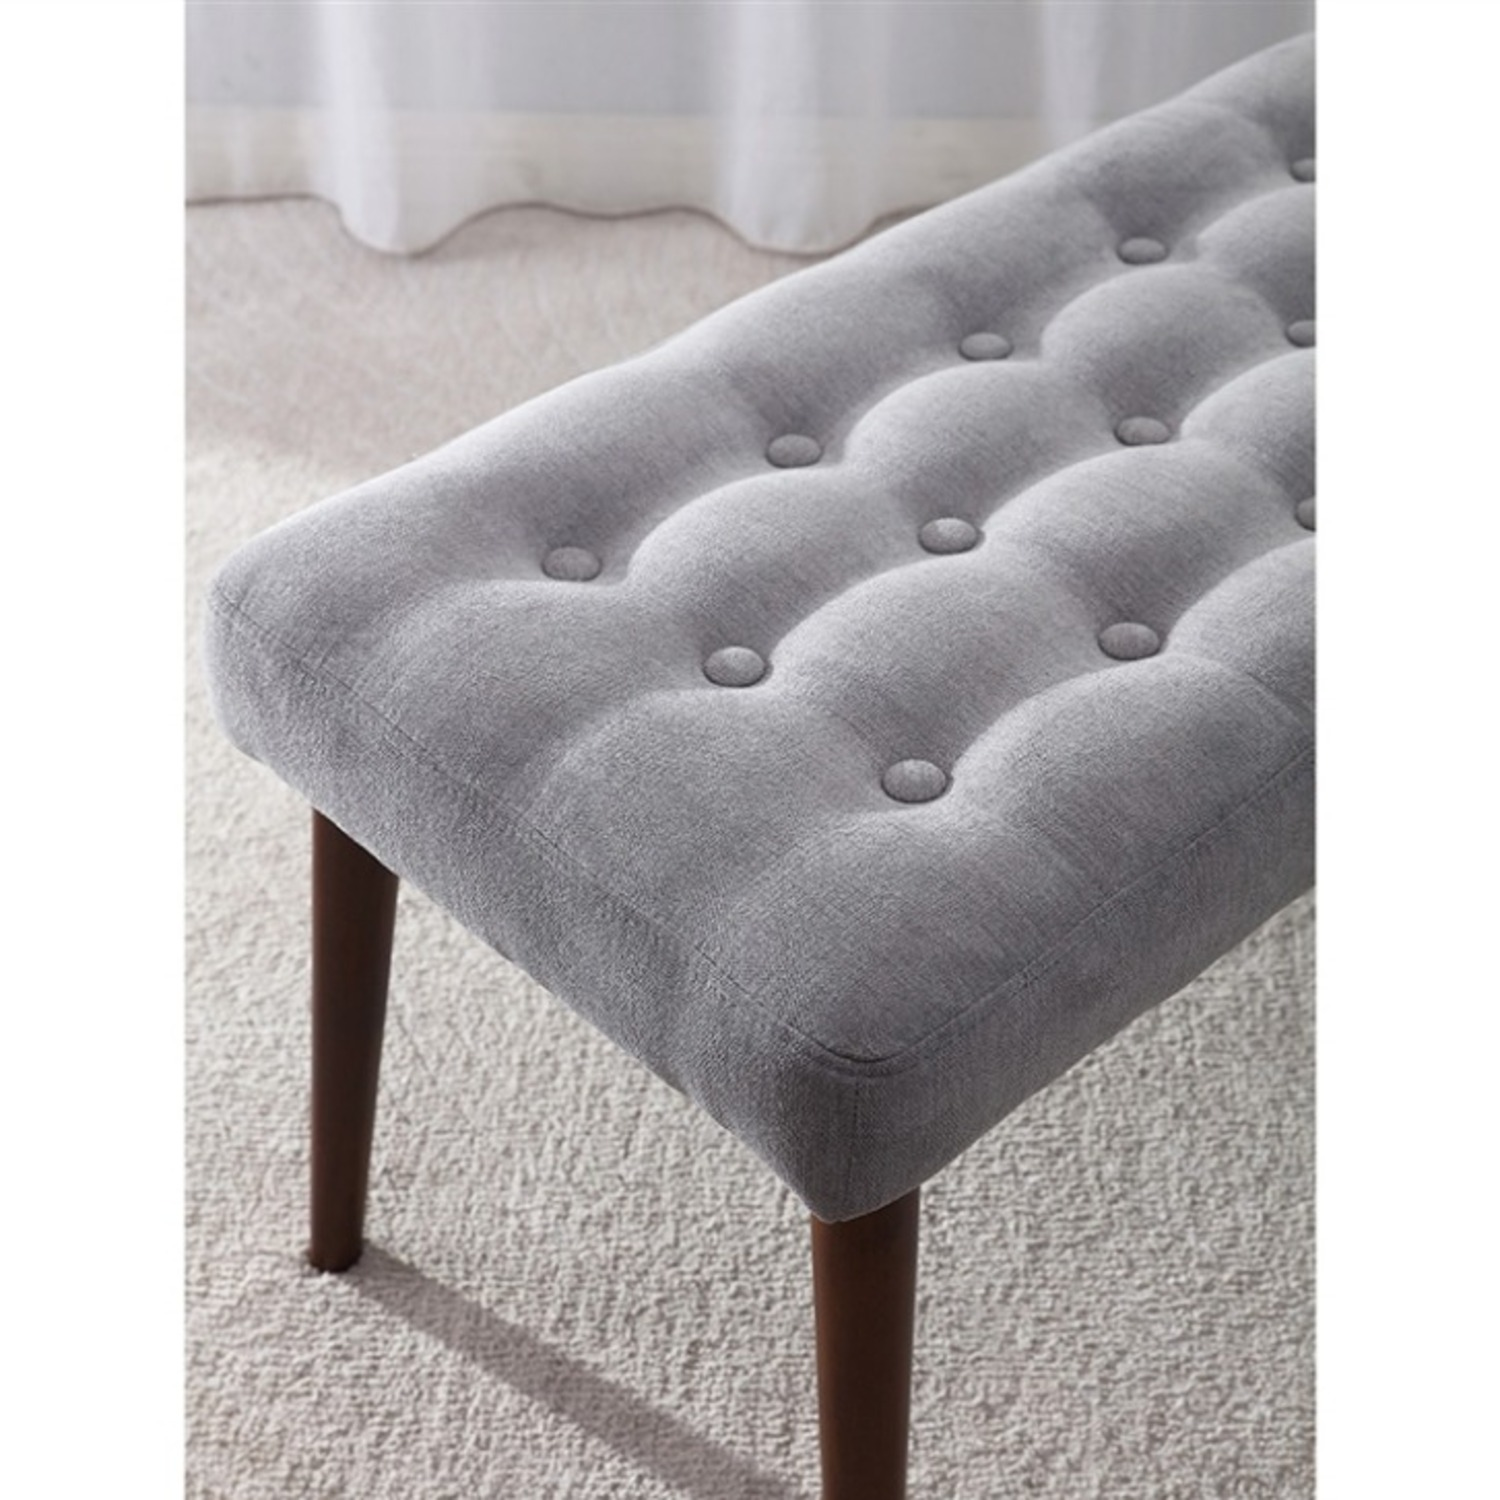 Bench In Gray Cotton Crafted W/ Beech Wood Base - image-3